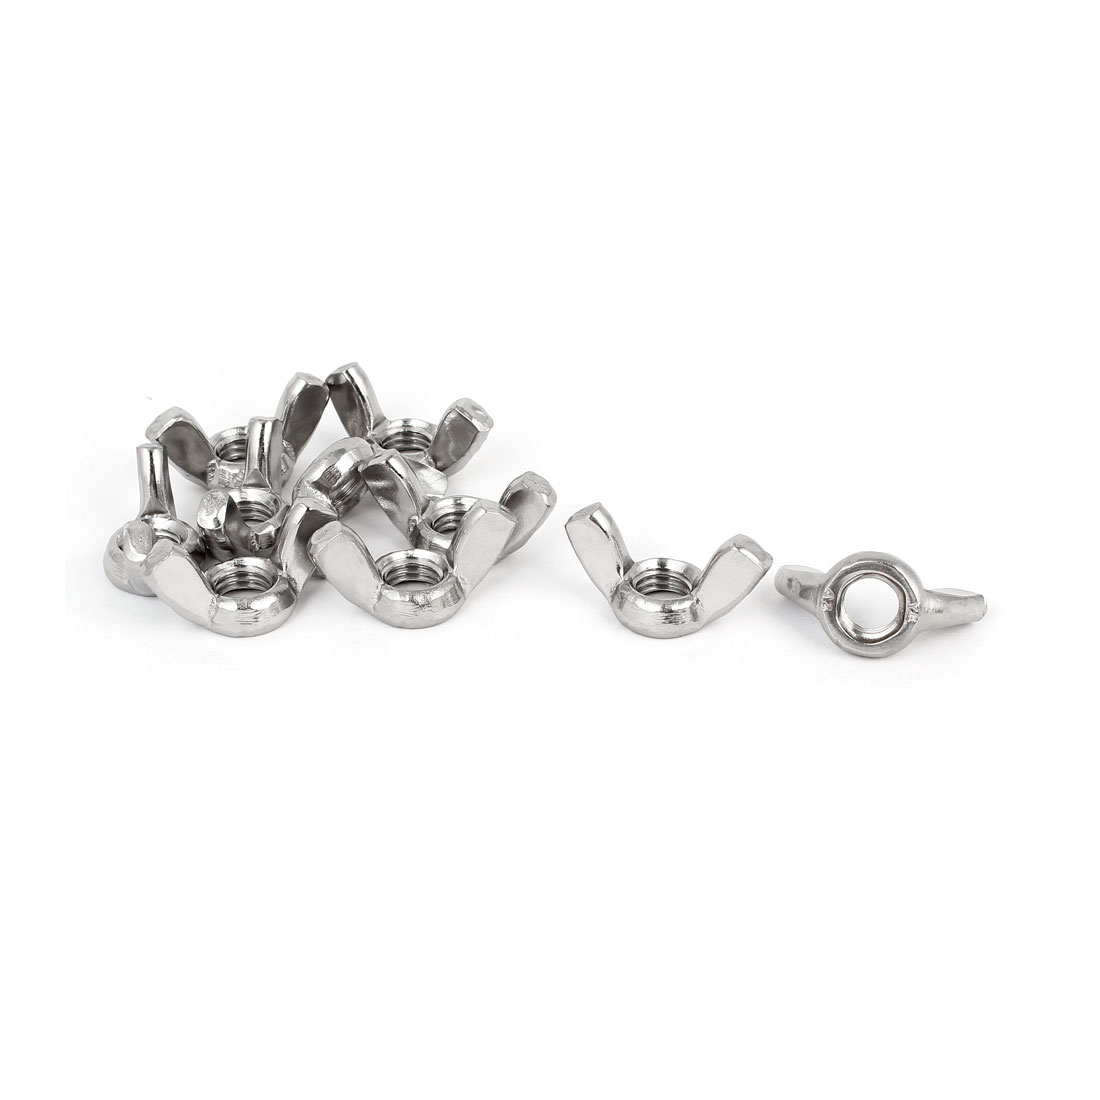 304 Stainless Steel Wingnut Butterfly Wing Nuts Silver Tone M10 10pcs